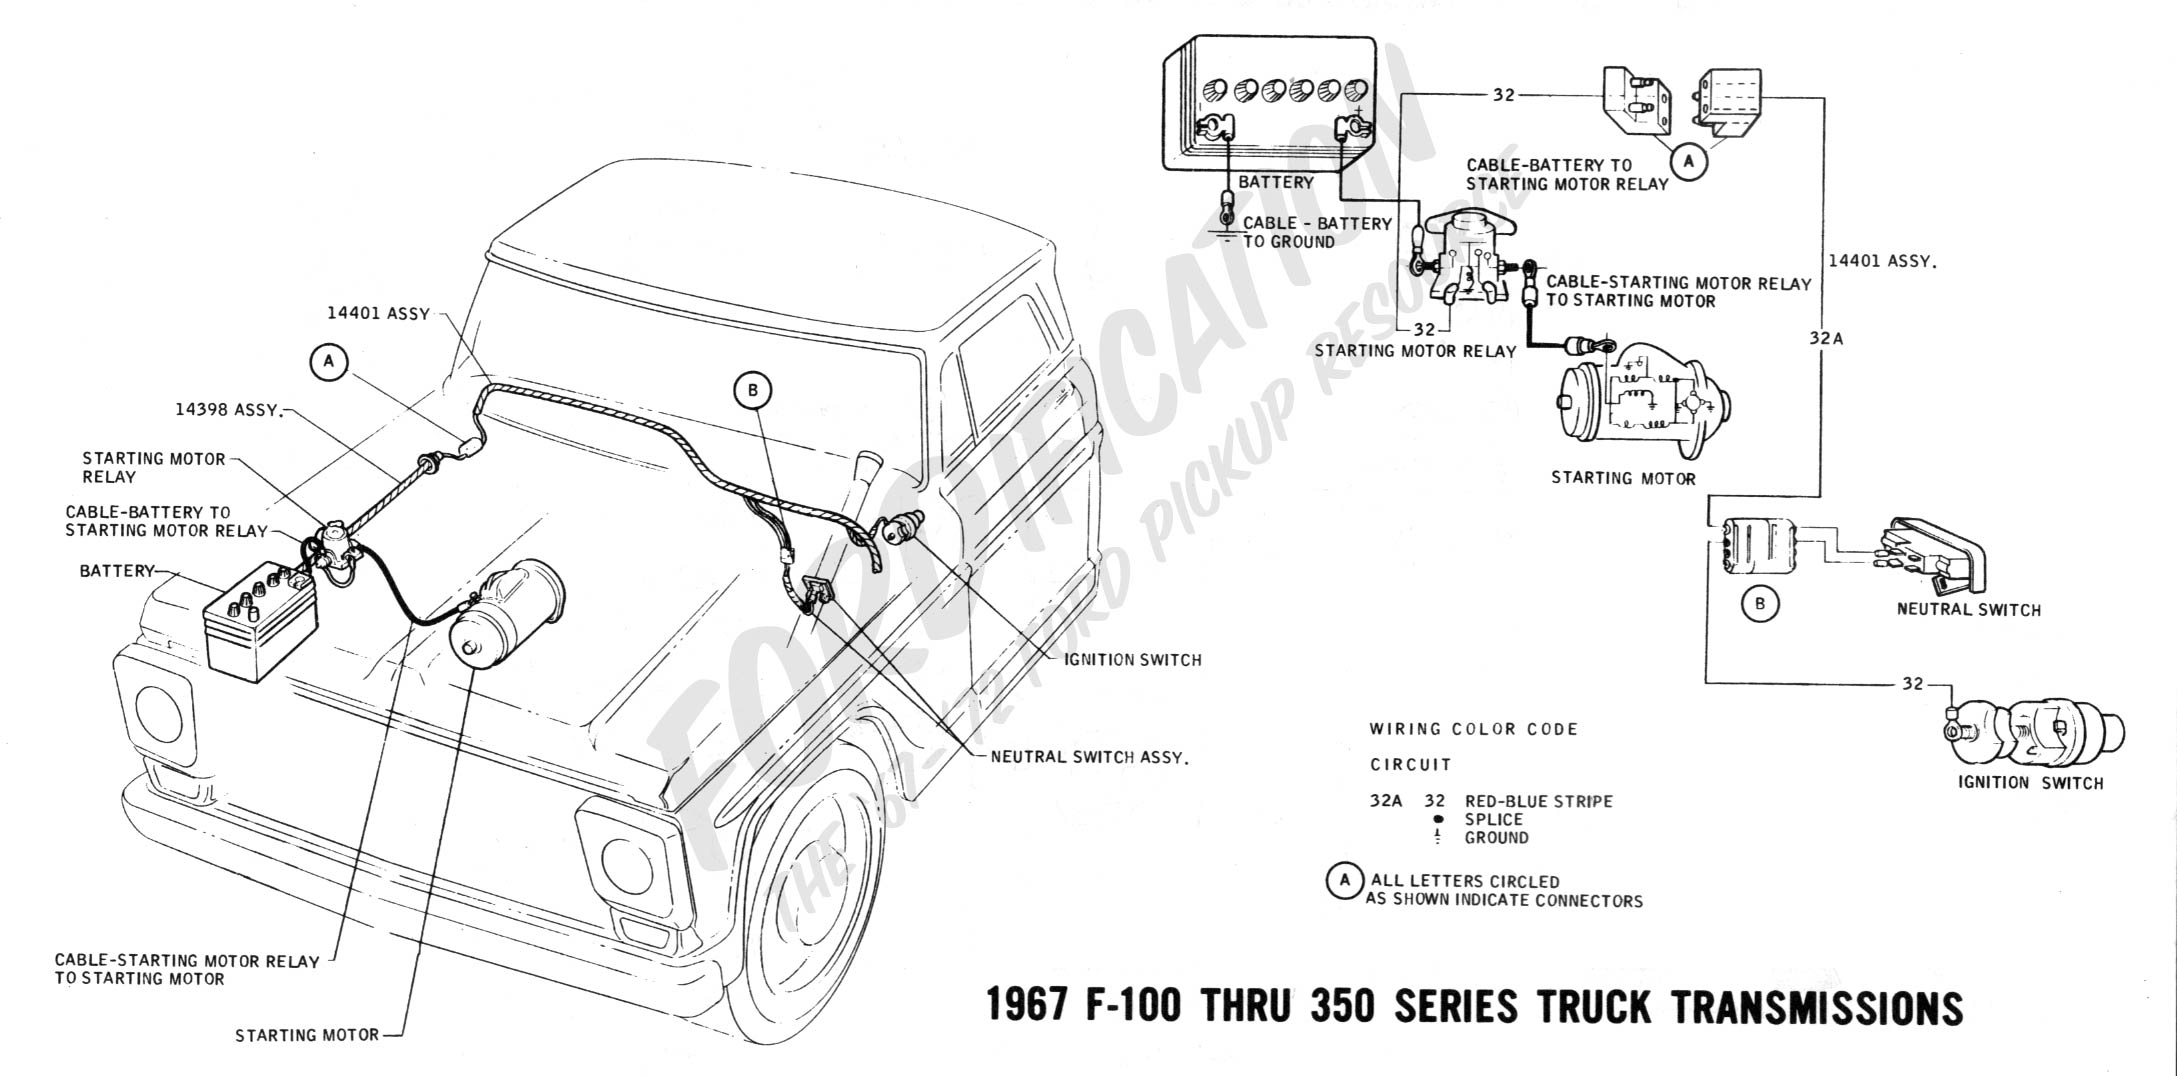 wiring 1967trucktranny 1985 ford f250 starter solenoid wiring diagram circuit and 1985 ford truck wiring diagram at bayanpartner.co